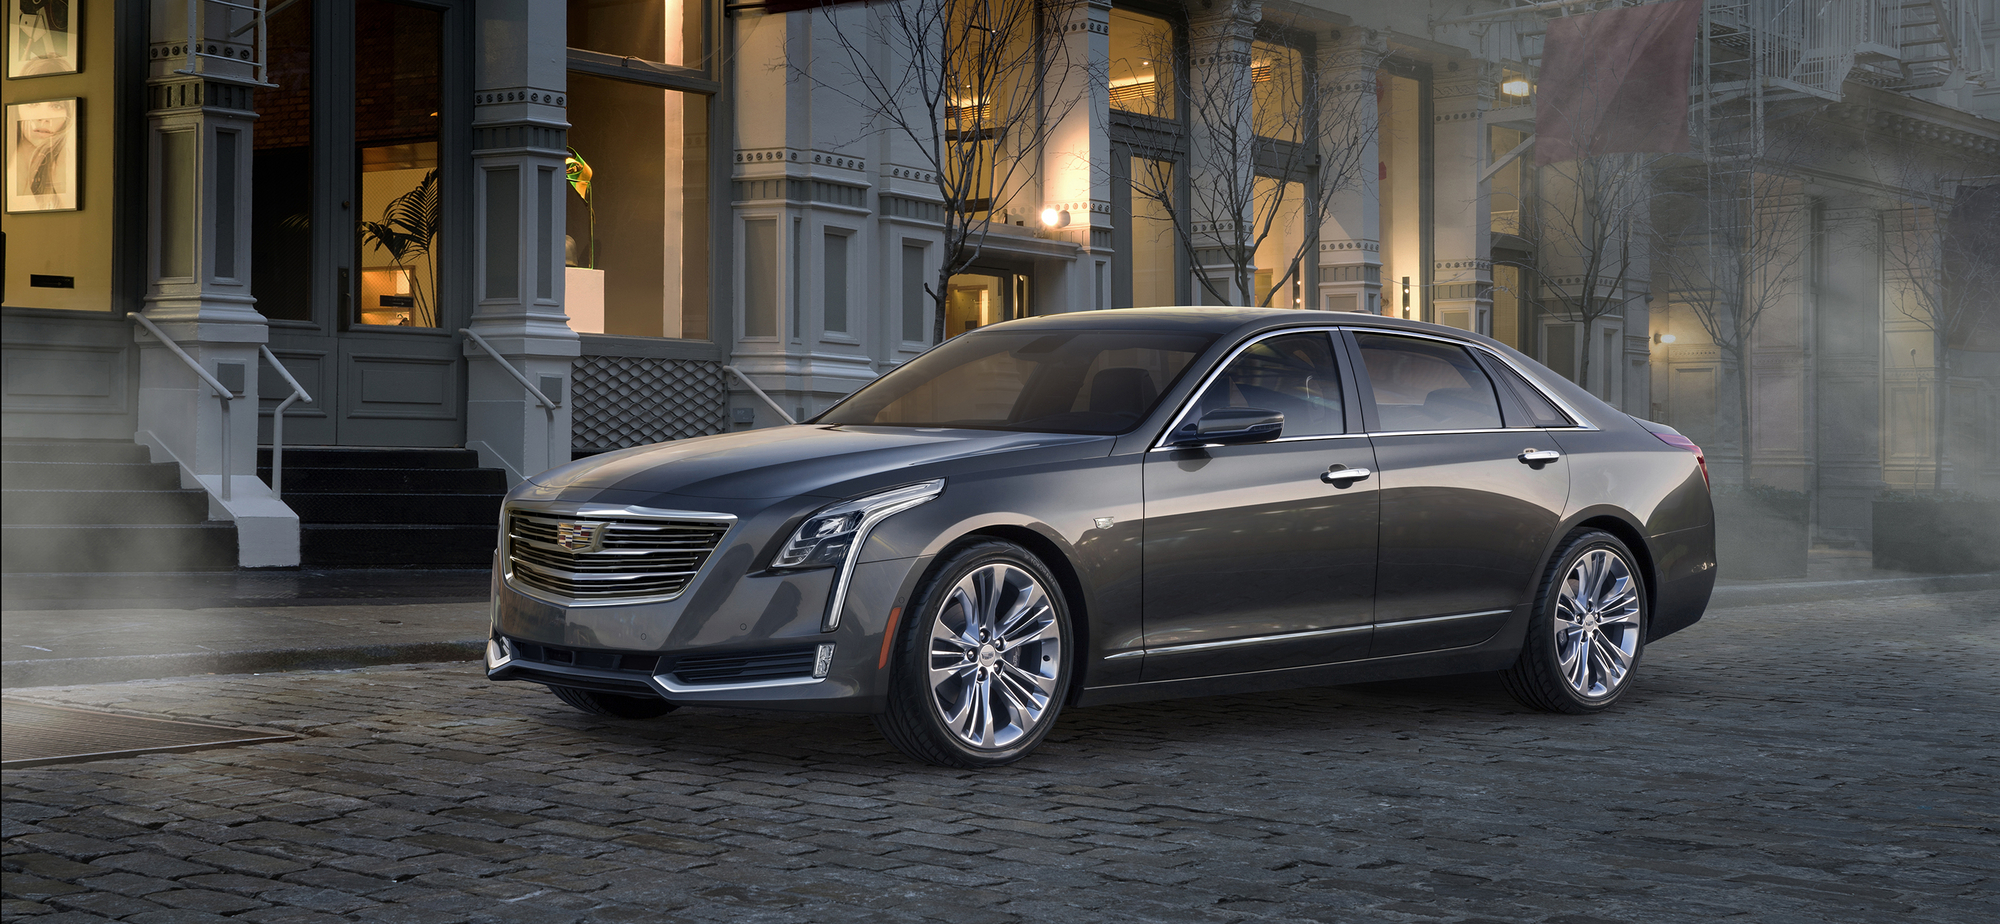 Cadillac CT6 3.0L V-6 twin-turbo DOHC DI